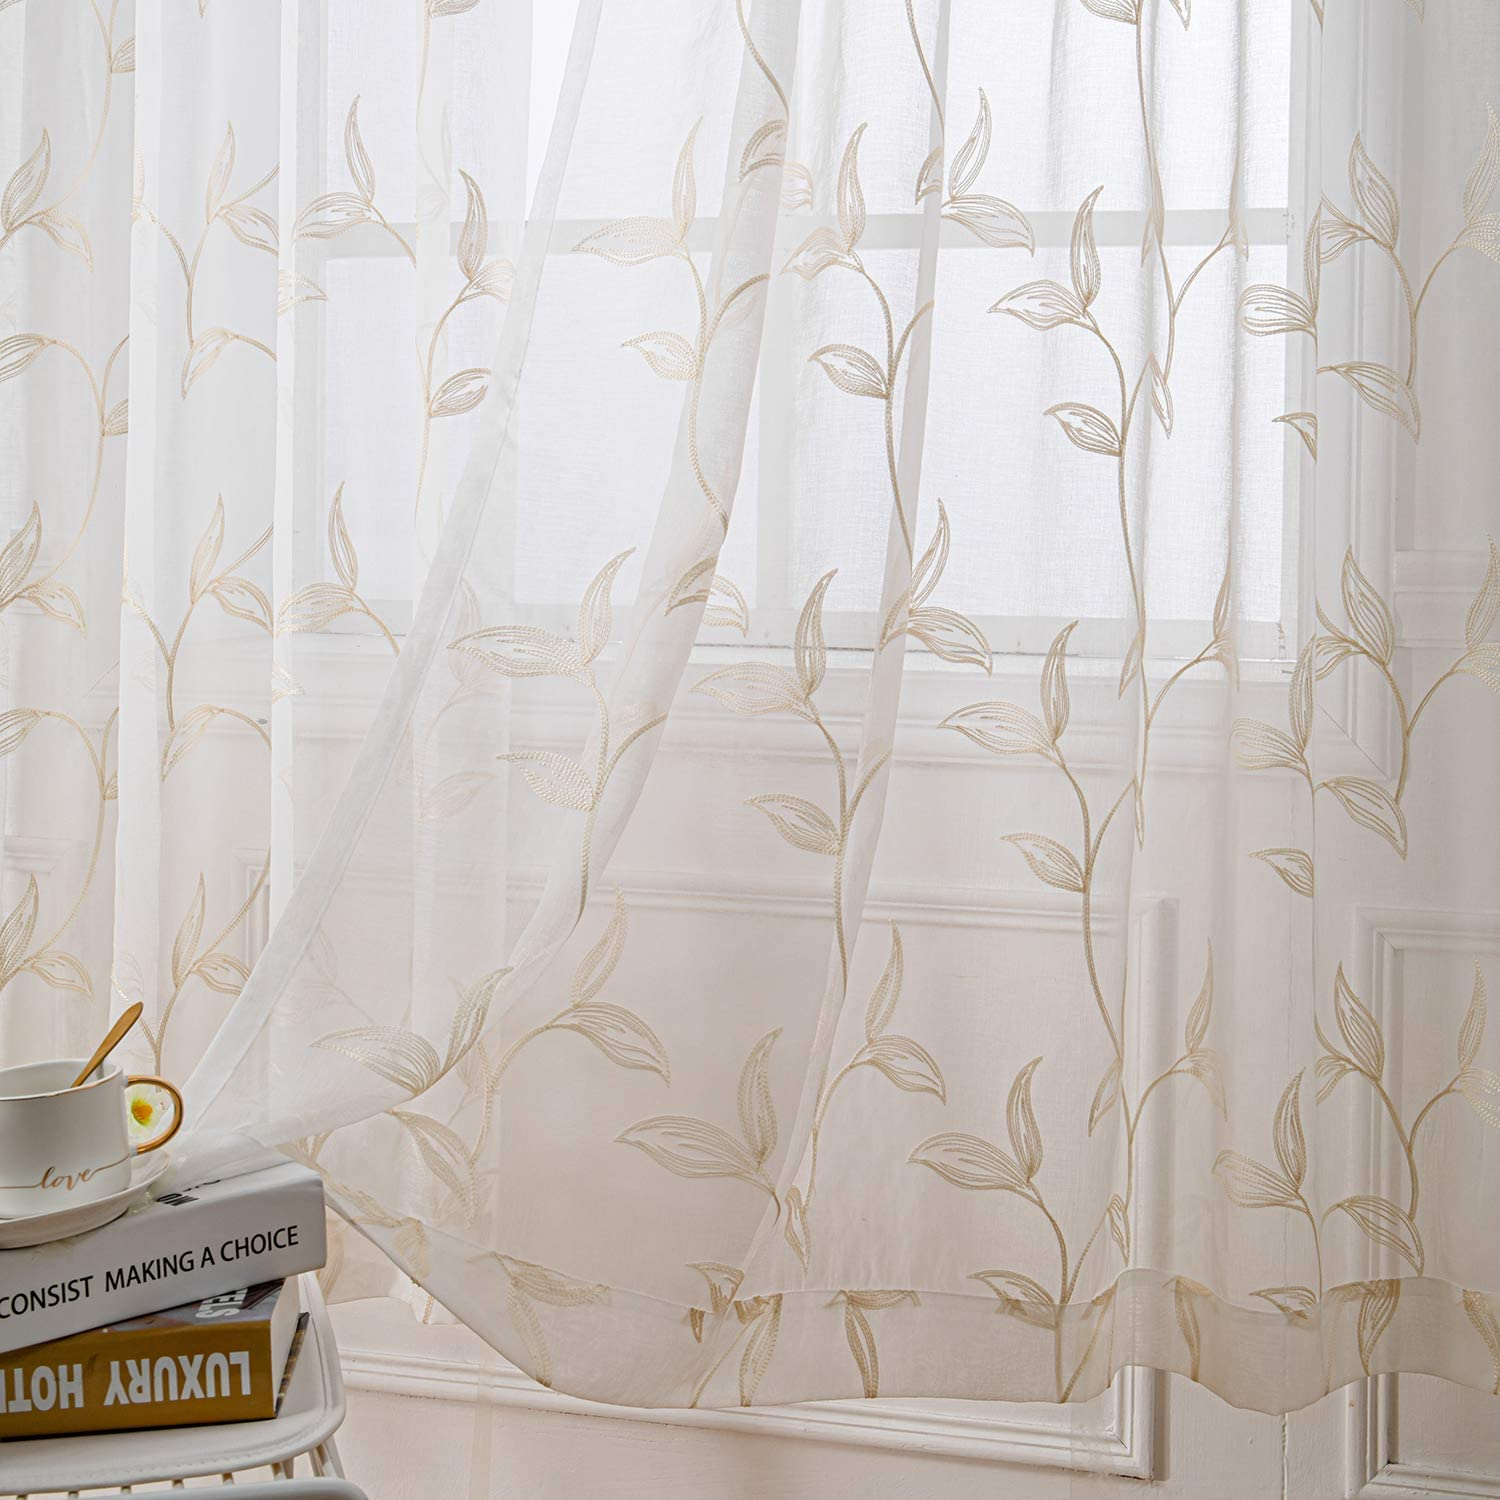 VISIONTEX White Sheer Curtains Voile Embroidered, Decor Cream Vine Leaves Embroidery Faux Linen Rod Pocket Window Drapes for Home Kitchen, Living Room and Bedroom 54 x 63 Inch, Set of 2 Curtain Panels